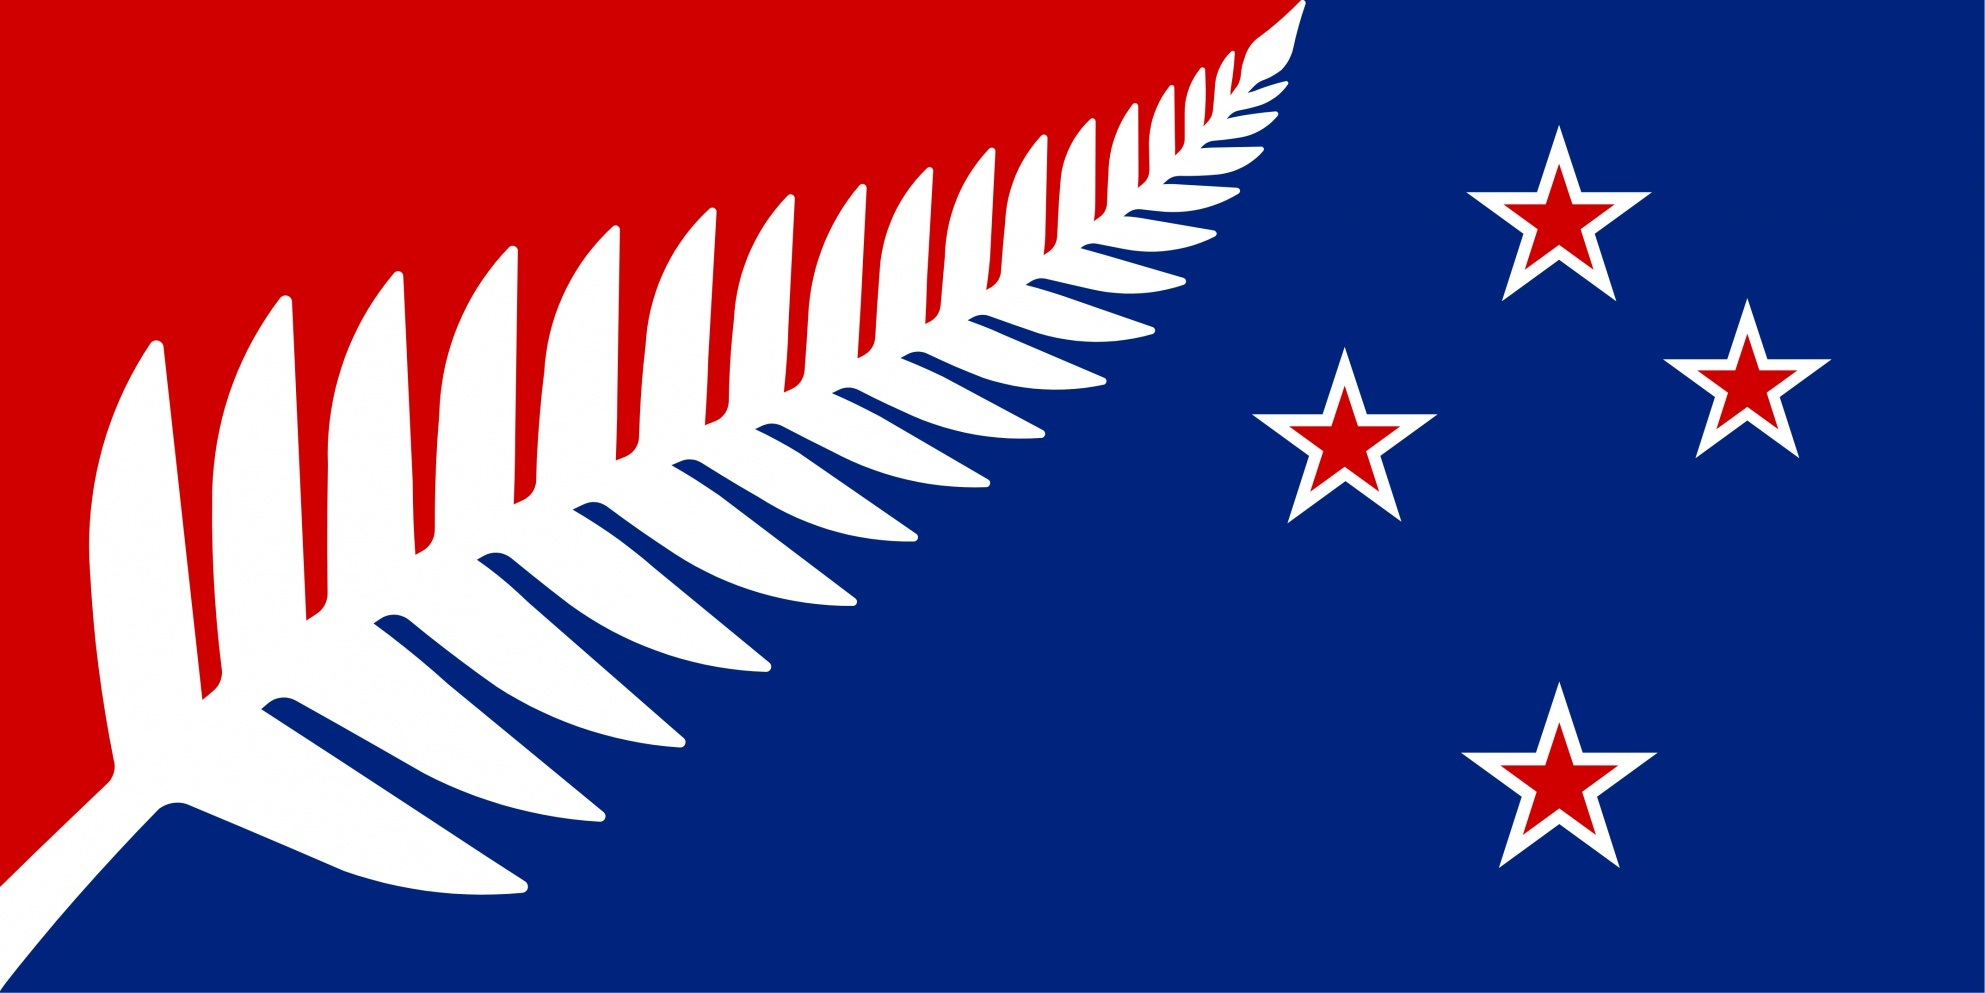 Image of the silver fern flag - red white and blue version.